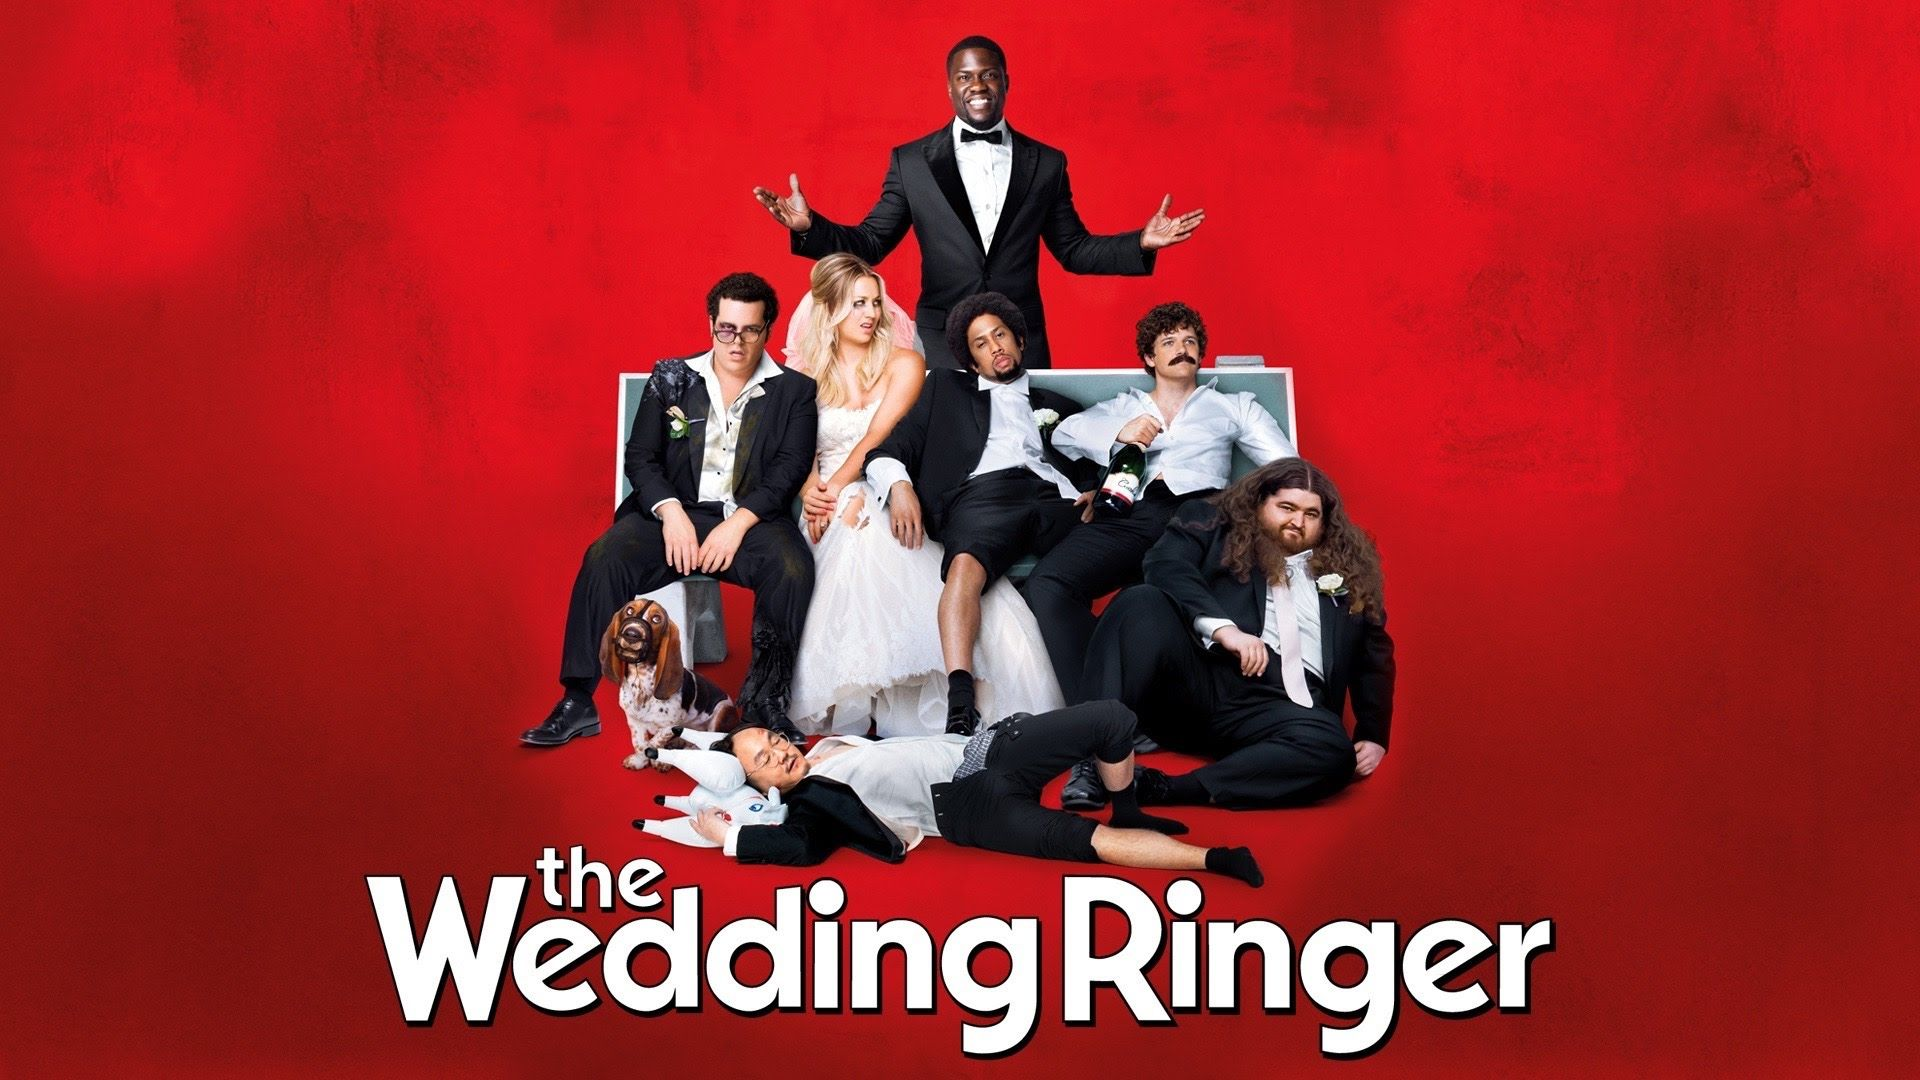 Mmx On Youtube The Wedding Ringer Official Trailer Hd Miramax Subscribe Now At Youtube C Wedding Ringer The Wedding Ringer Bridal Accessories Wedding